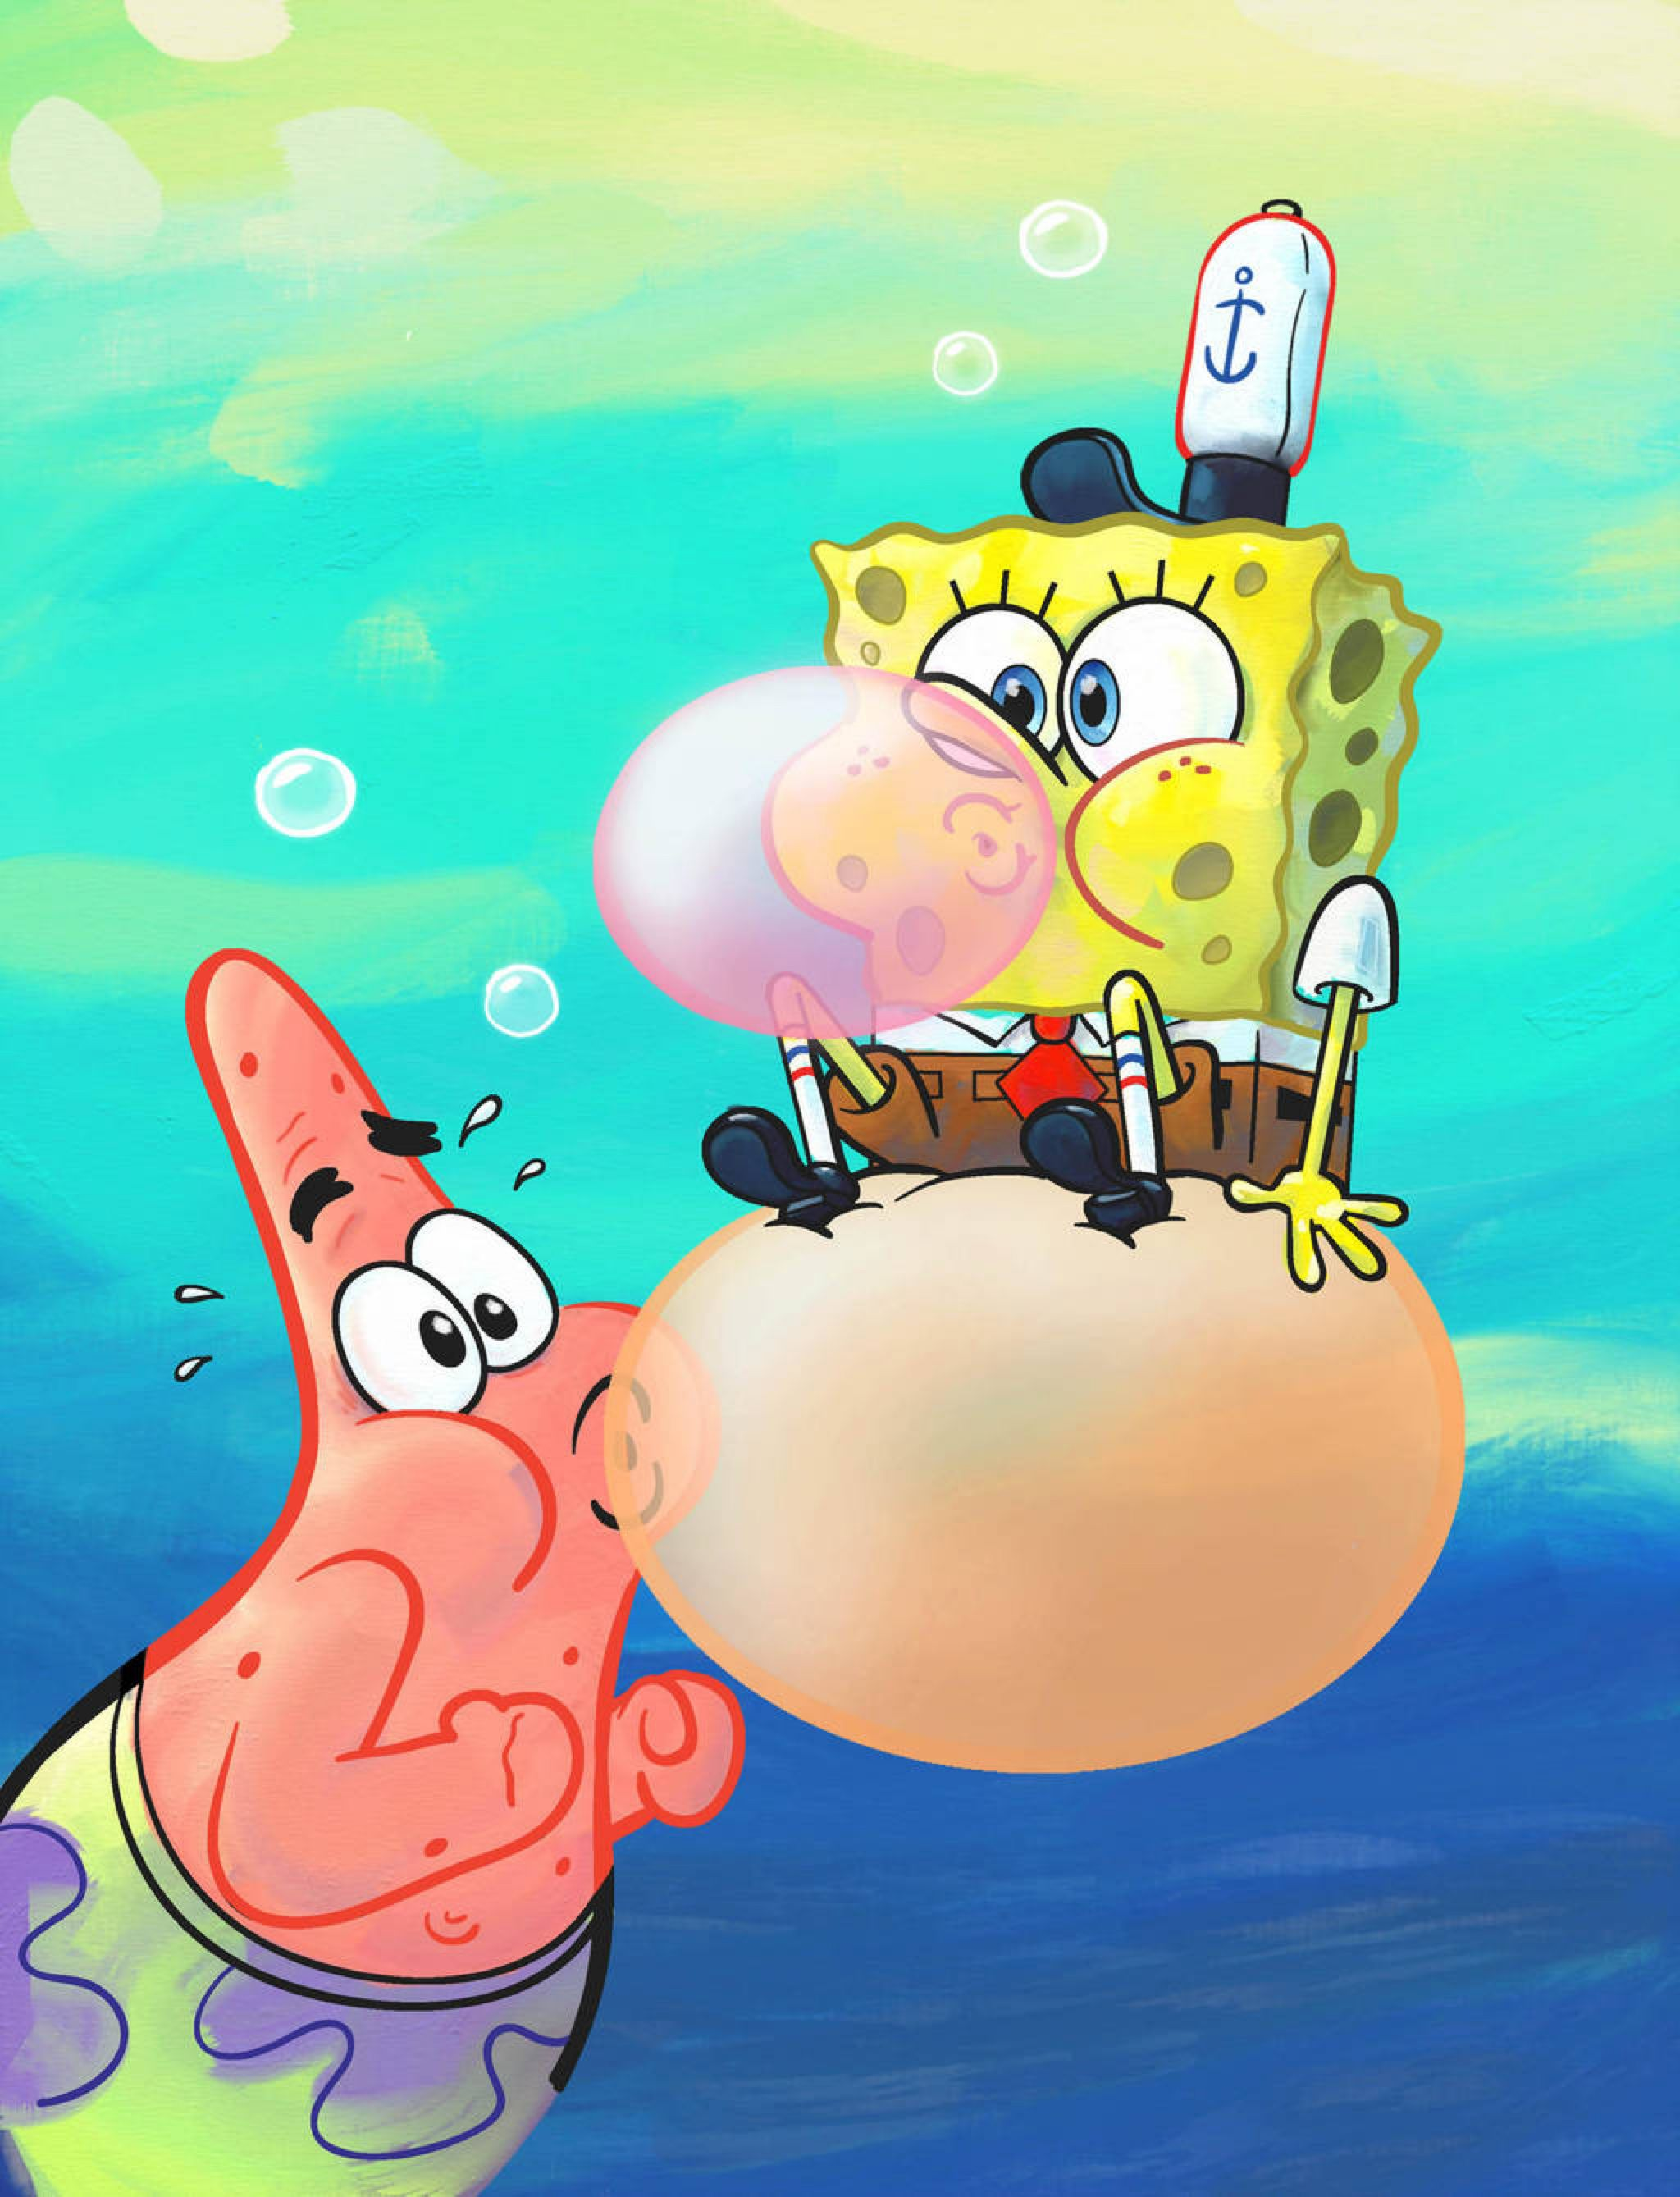 Spongebob Patrick Bubblegum By Shermcohen On Deviantart